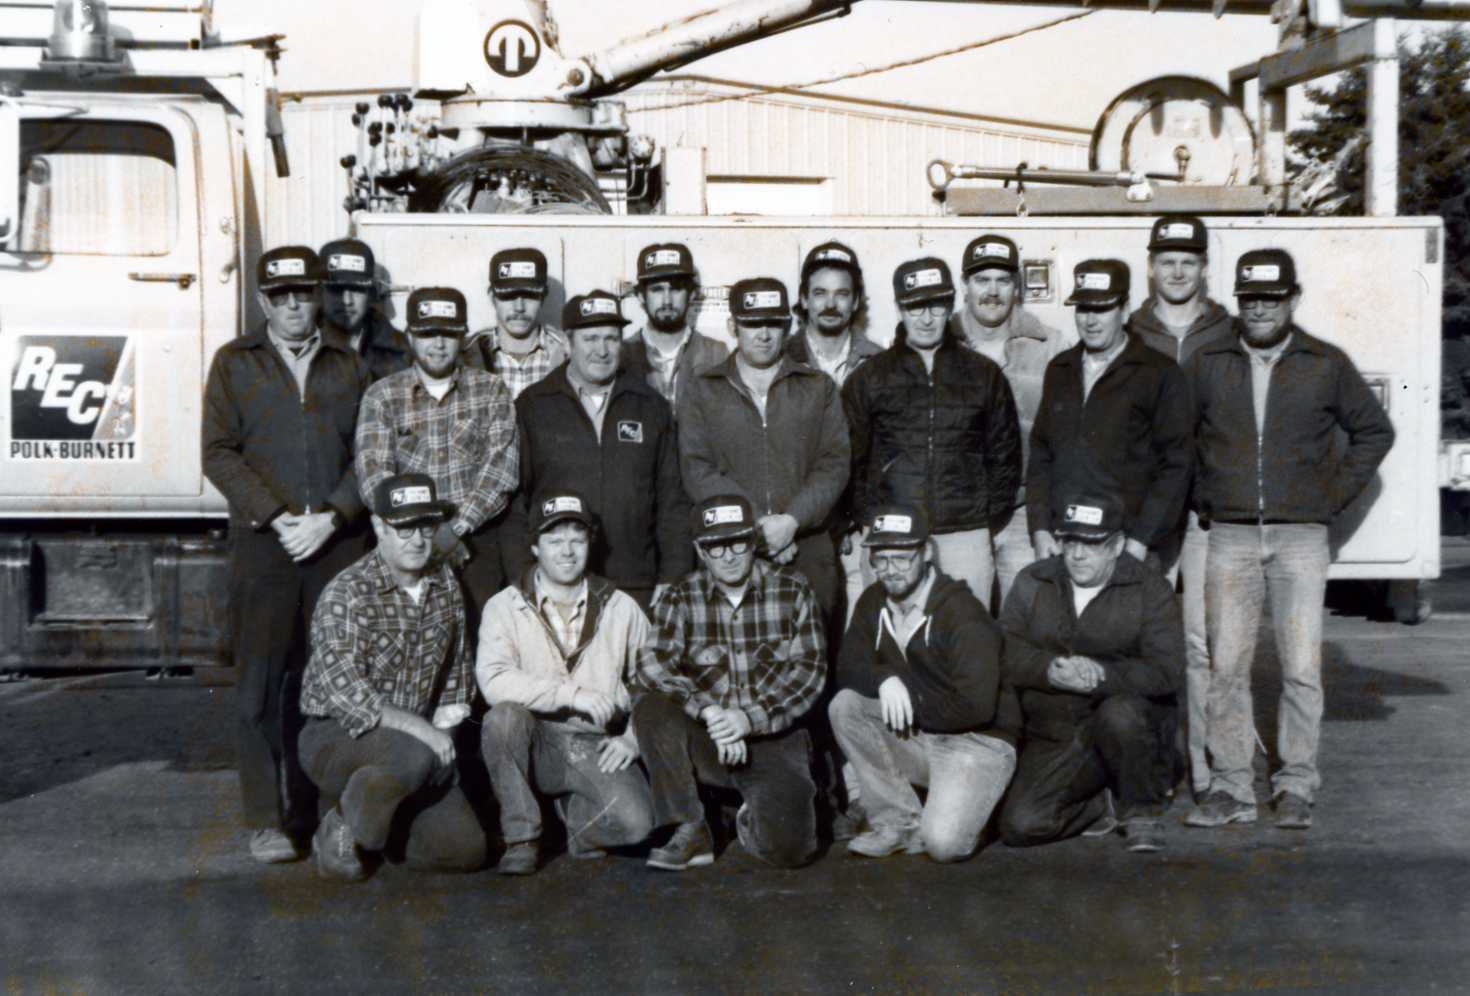 https://polkburnett.com/sites/pbec/files/revslider/image/Group_Photo_Linemen_by_Truck_Mid_80s.jpg